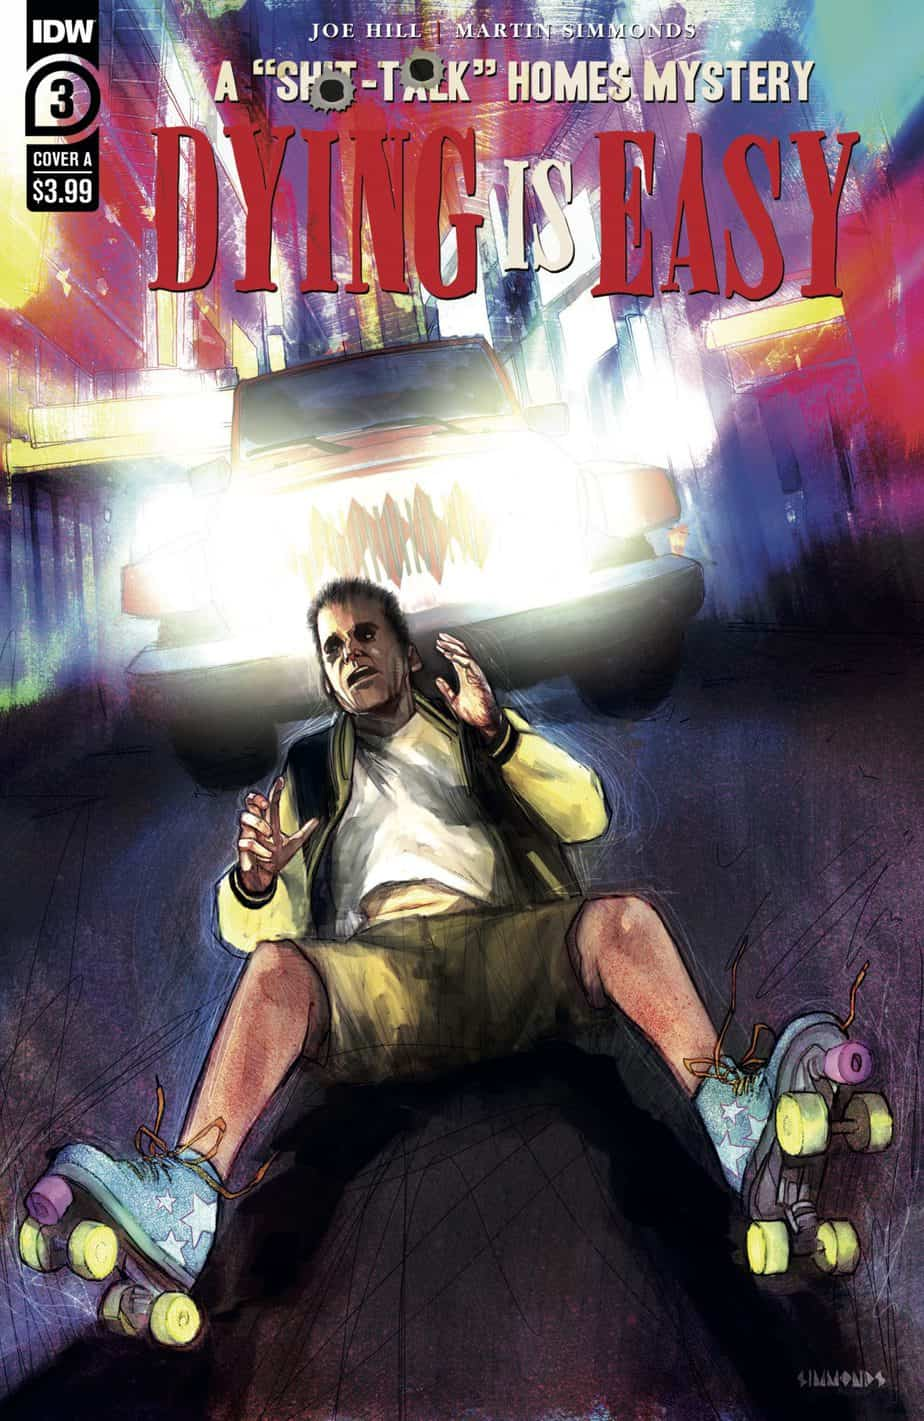 Dying is Easy #3 - Cover A